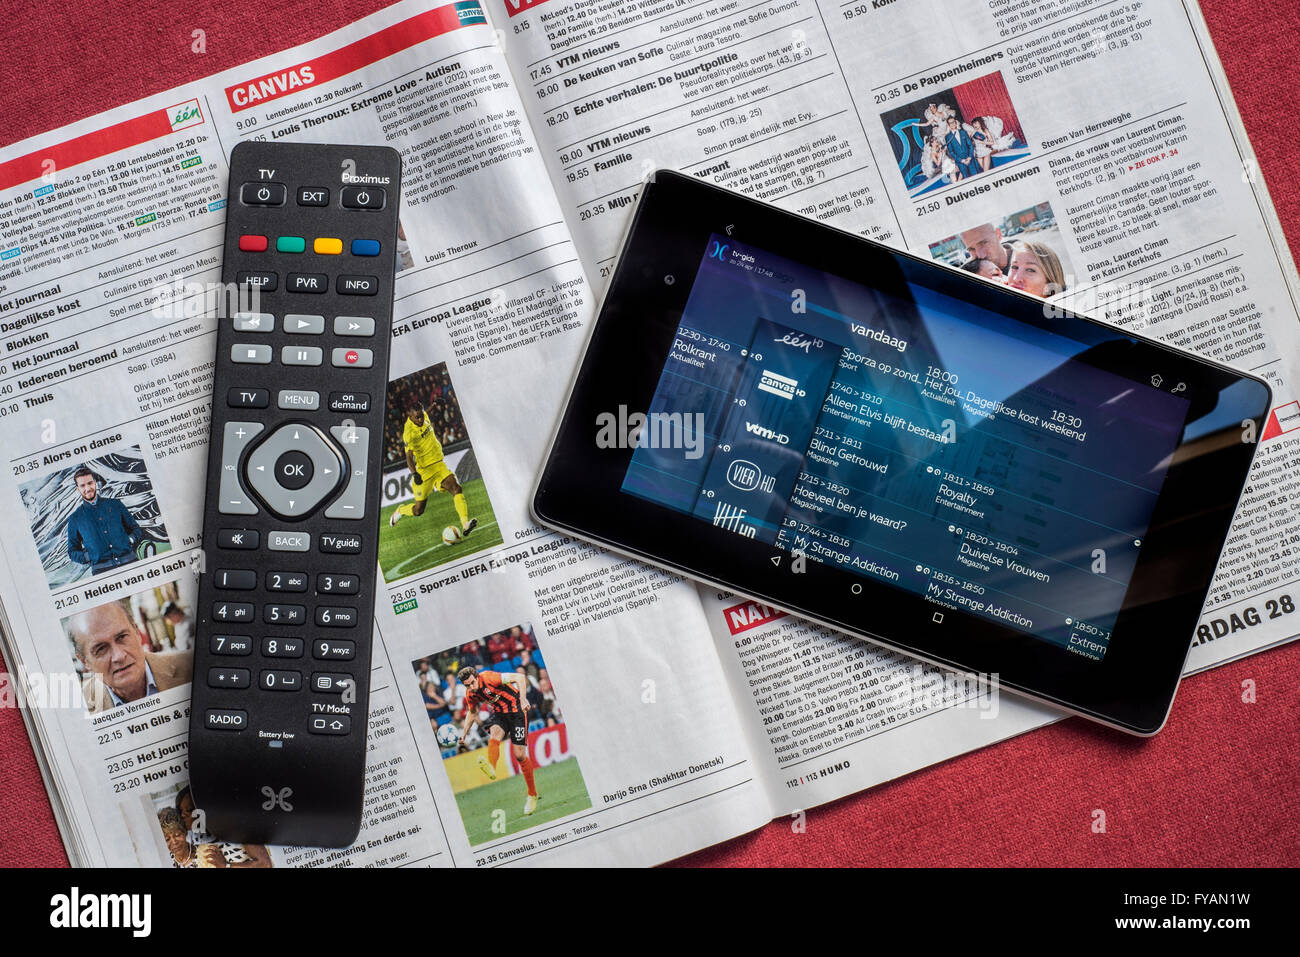 Remote control and tablet showing television channels on top of open Belgian magazine showing the tv programmes' - Stock Image